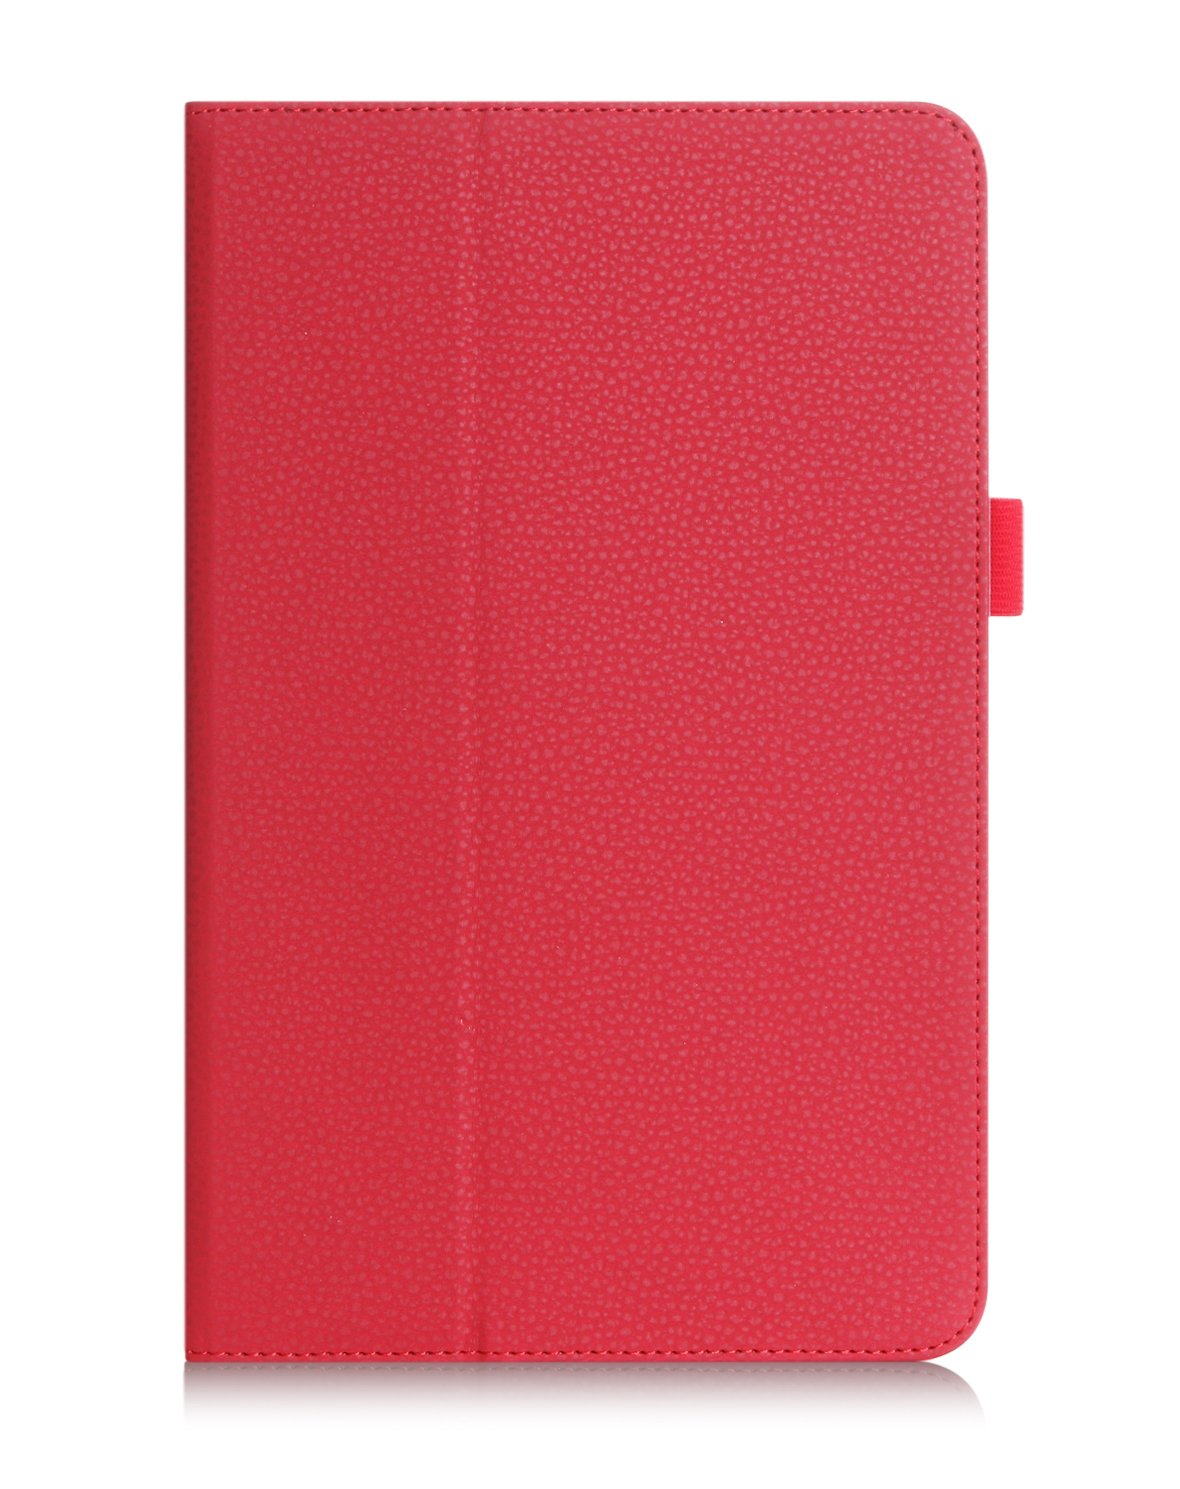 FYY LG G Pad X8.3 Case, [Full Protection] Premium PU Leather Case with Card Slots, Note Holder for [Only Verizon Wireless Model VK815] LG G Pad X8.3 Android Tablet Red(With Auto Wake/Sleep)